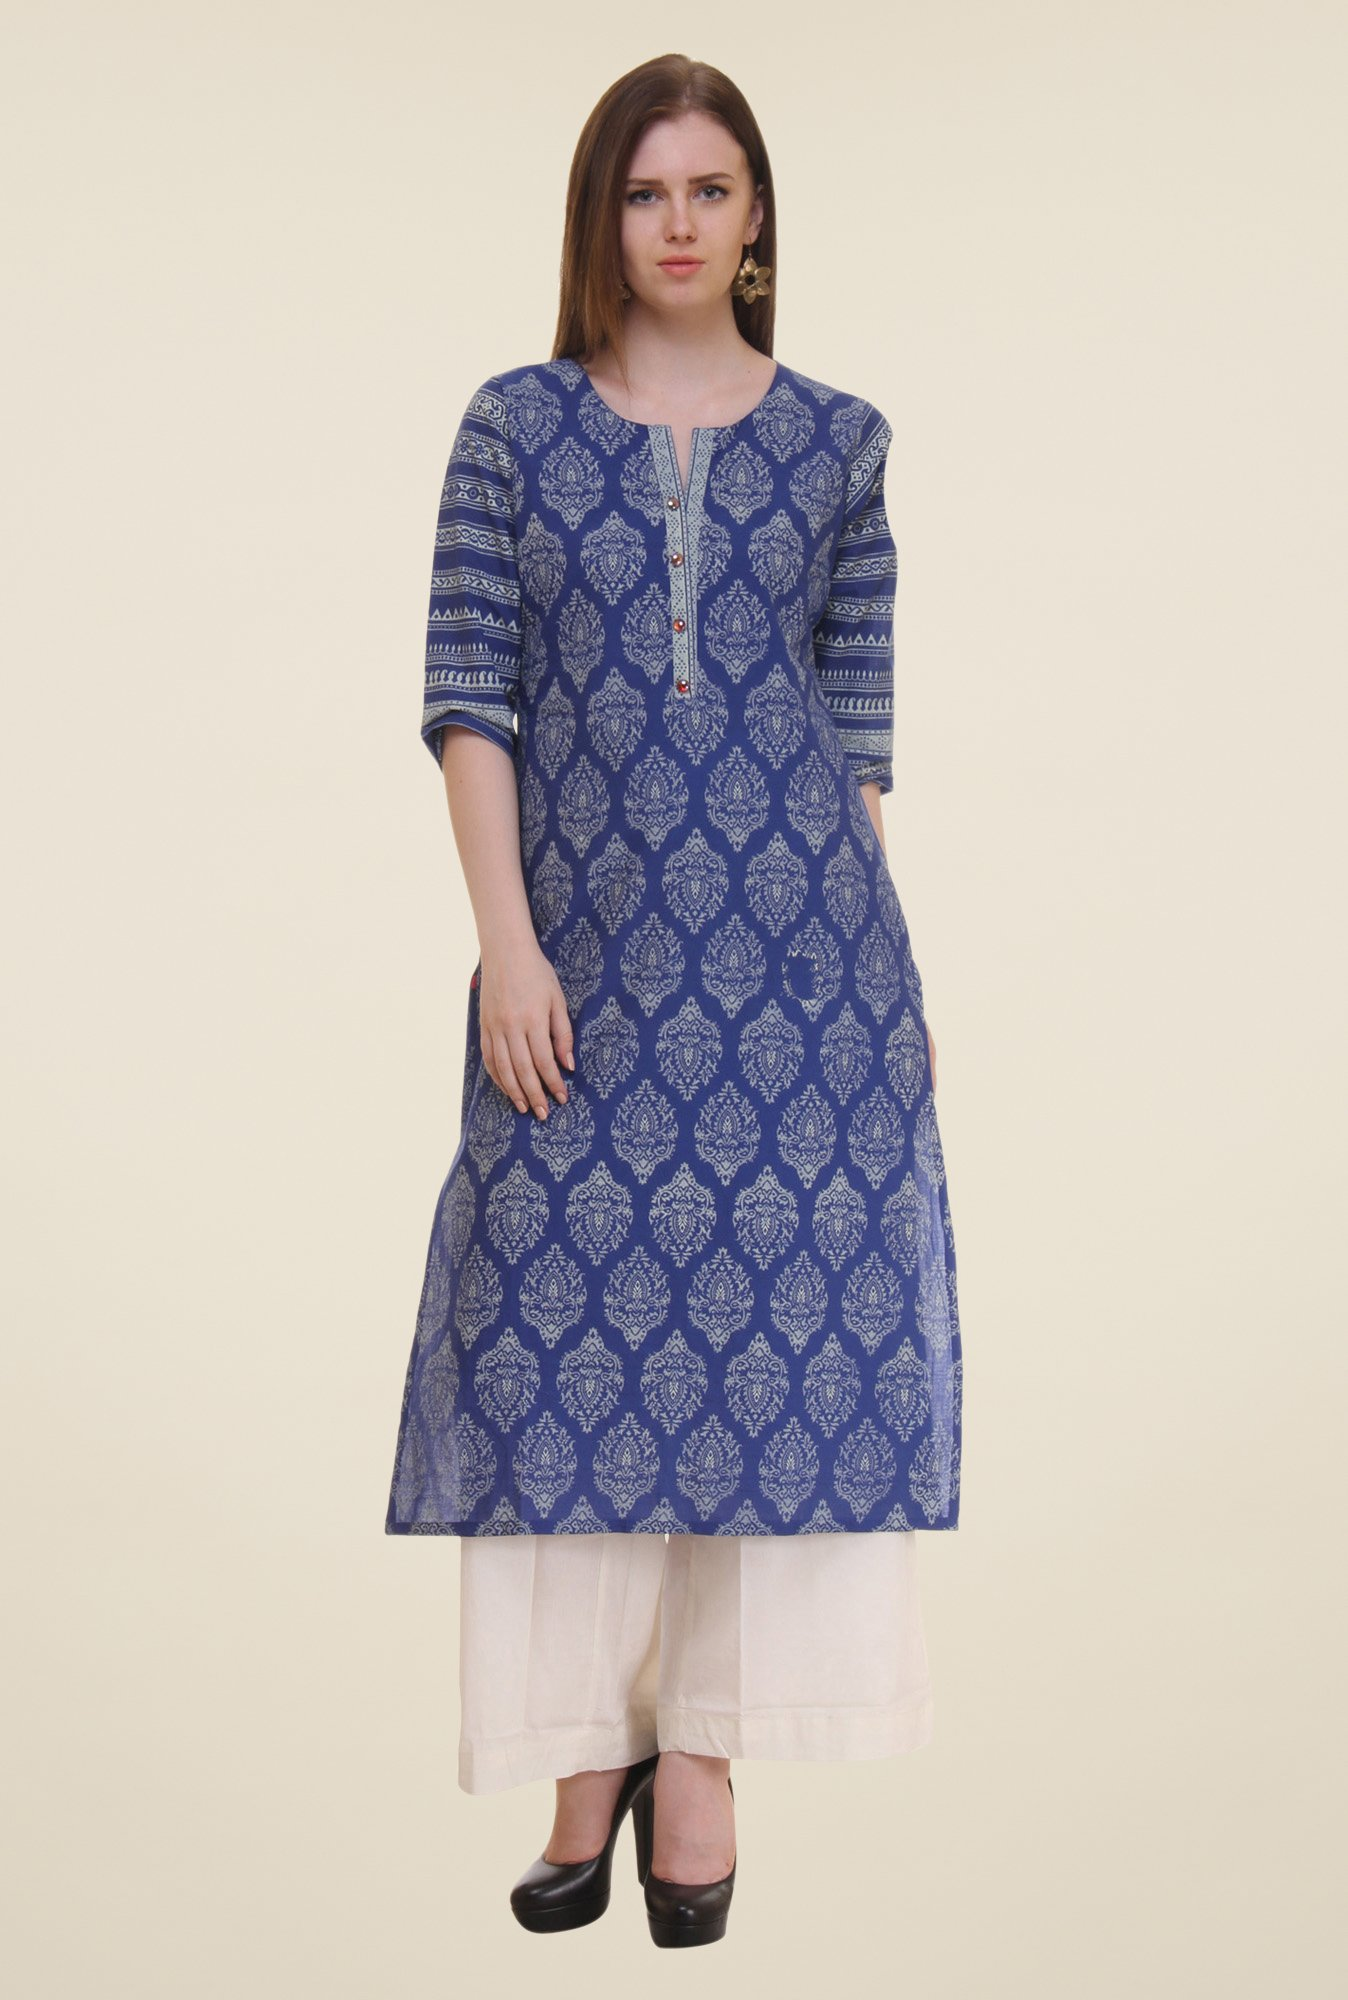 Shree Dark Blue Block Print Cotton Kurta